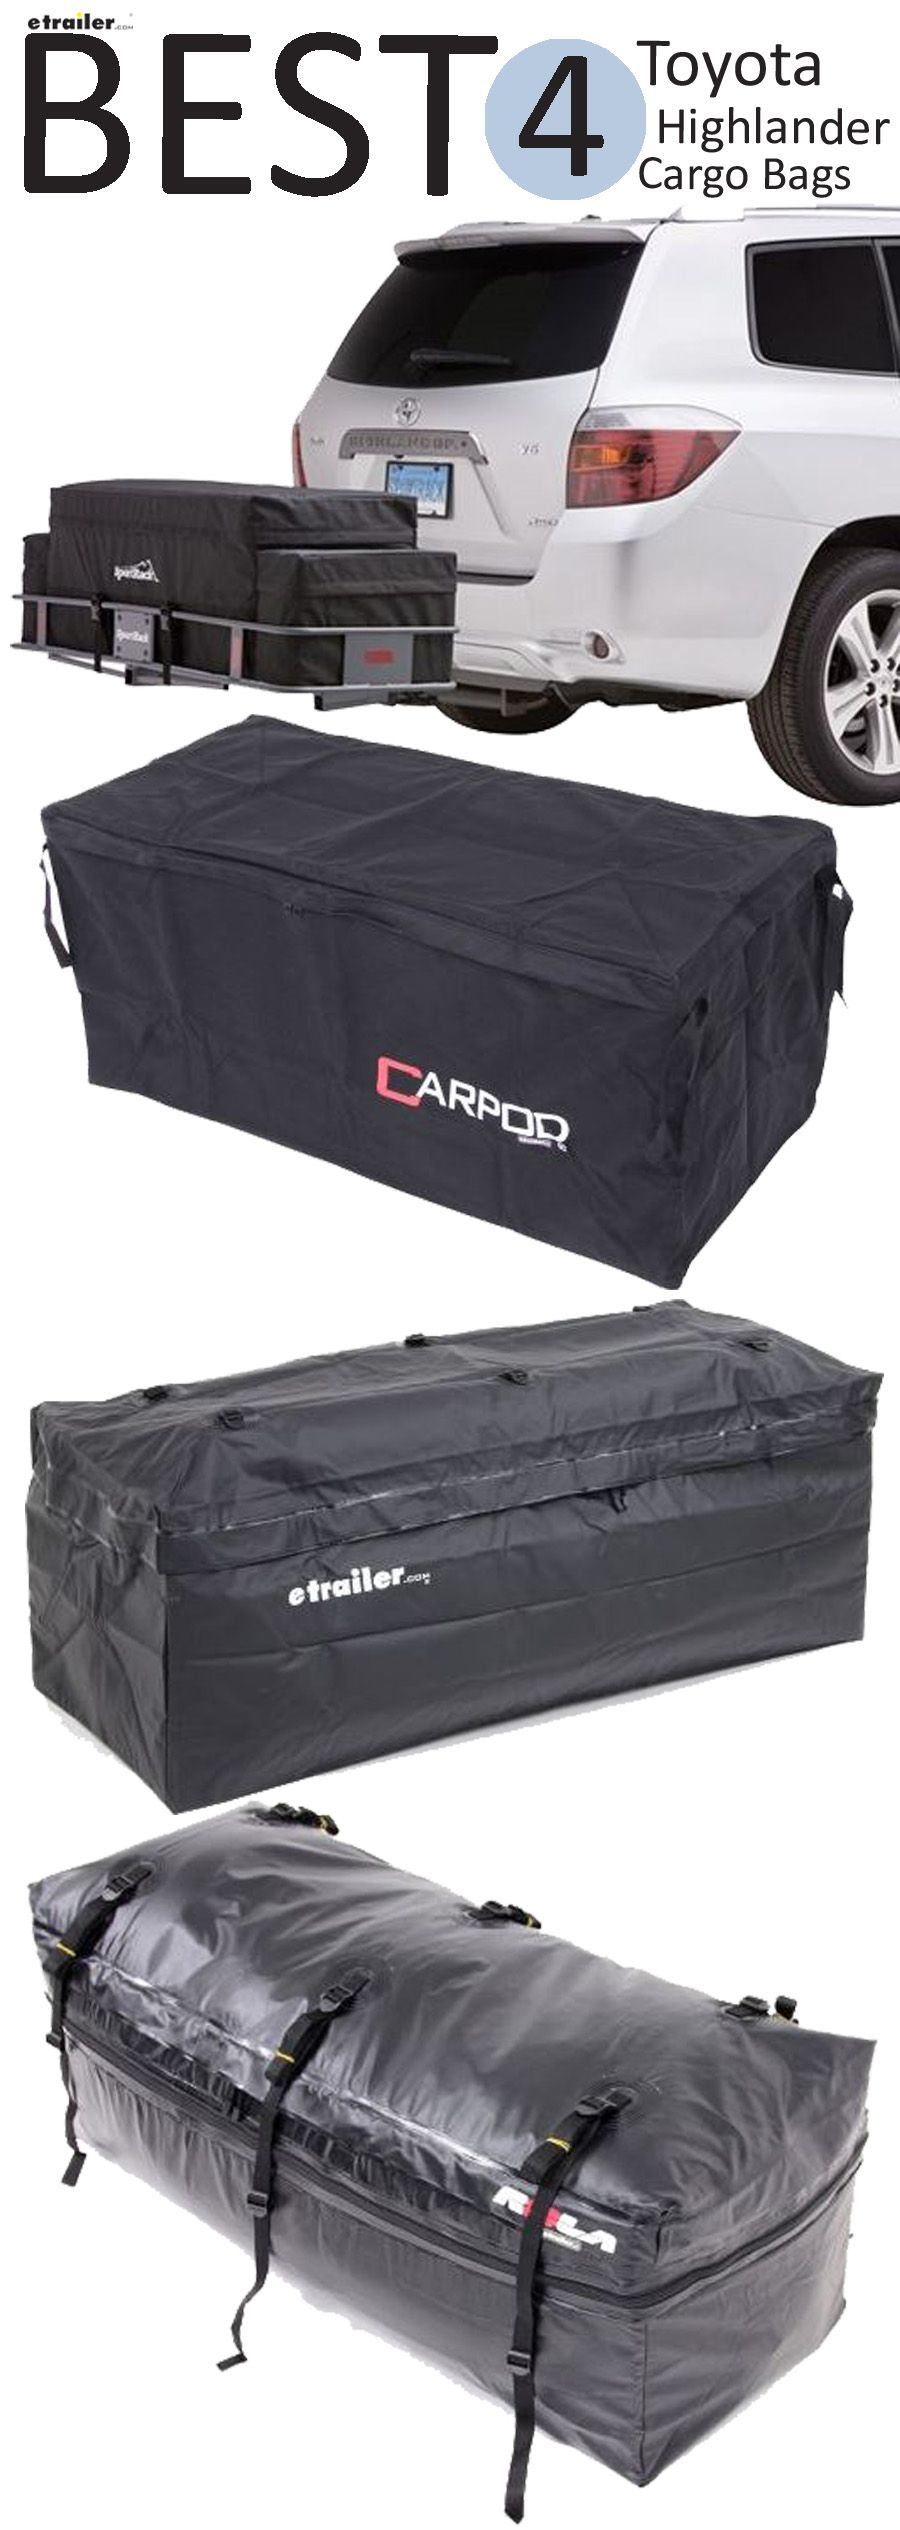 here are the best 3 cargo carriers for your toyota highlander